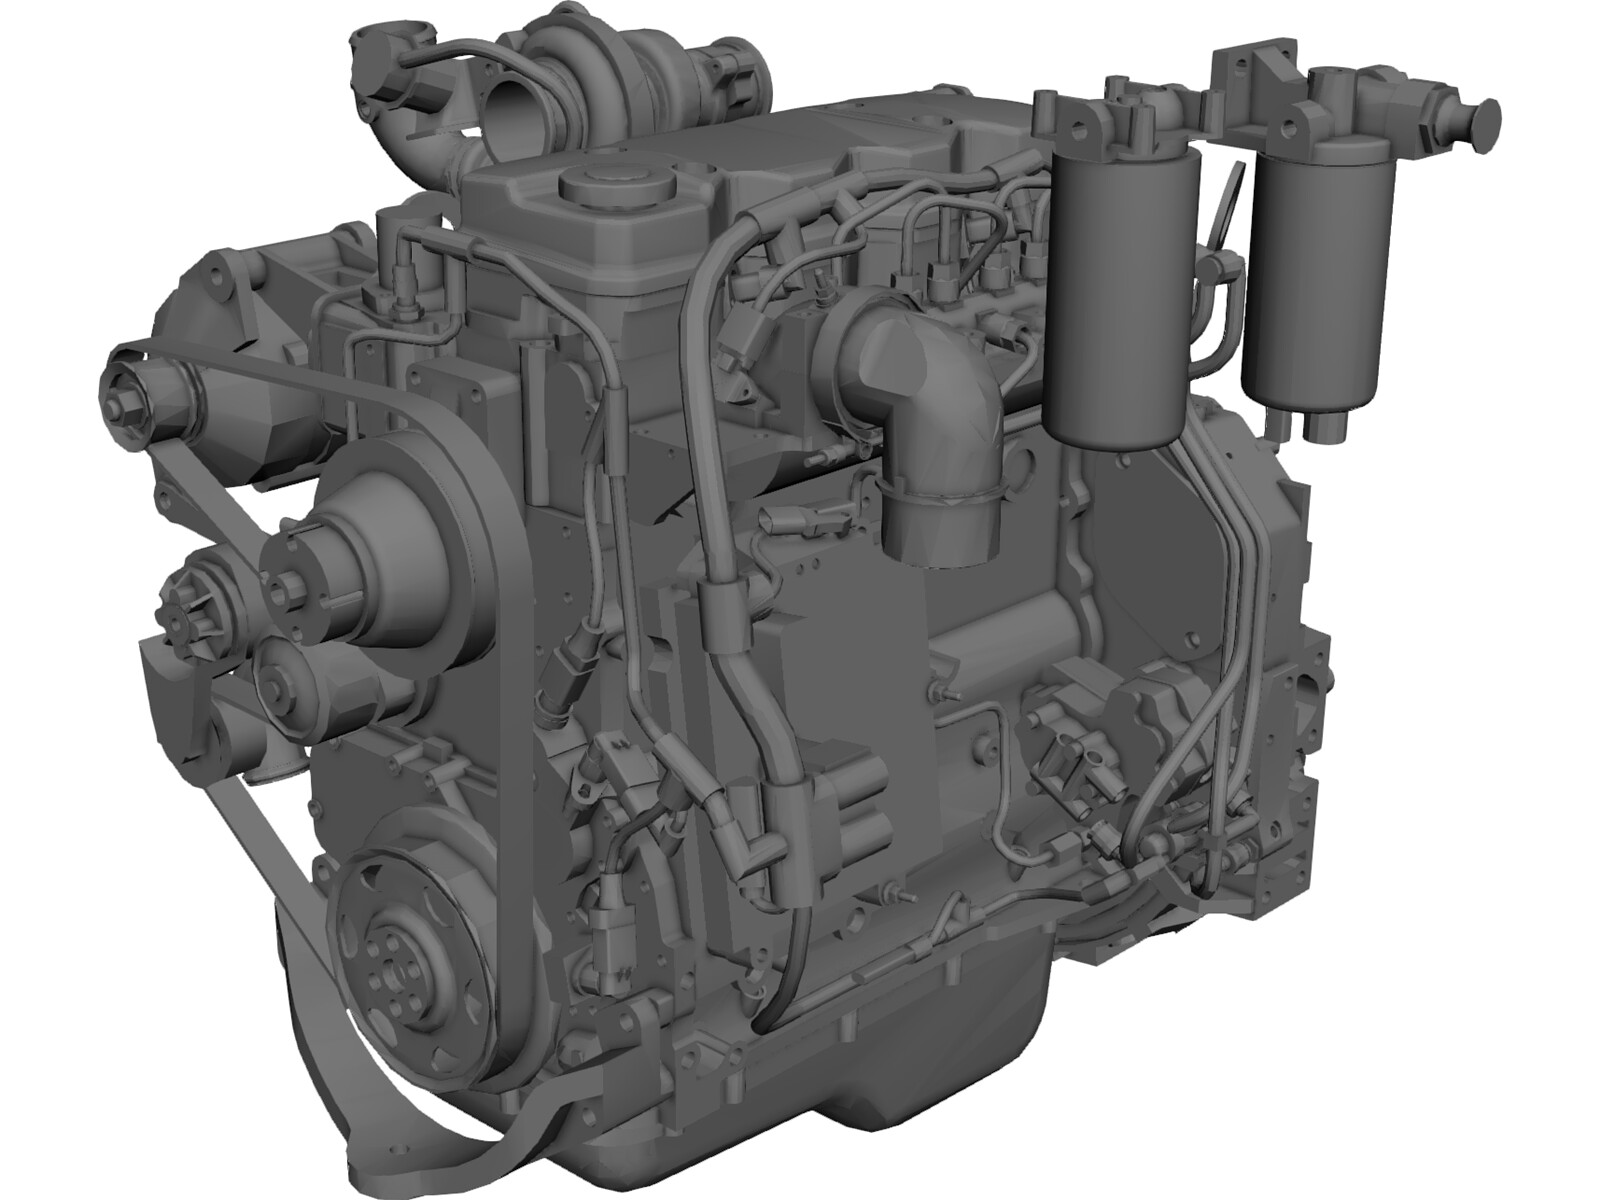 Engine Cummins QSB4.5TAA 3D Model